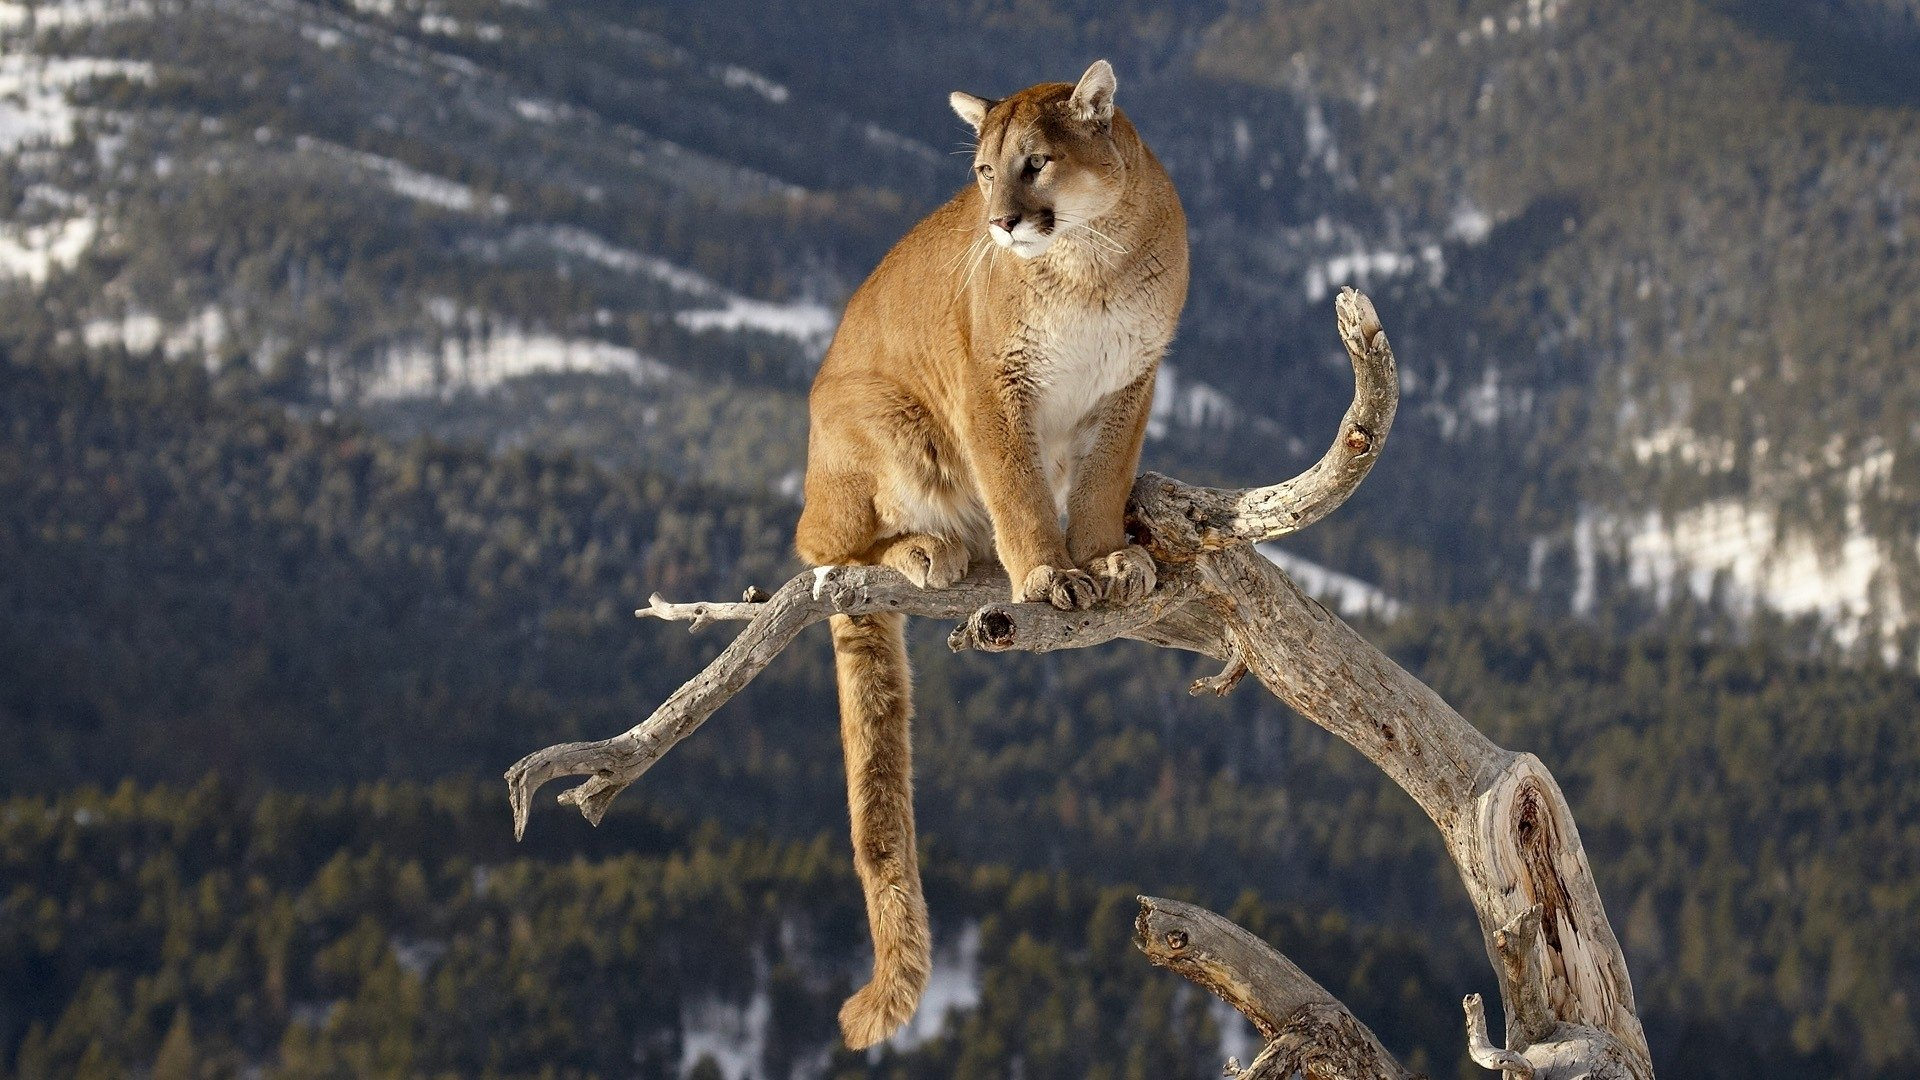 160 cougar hd wallpapers | background images - wallpaper abyss